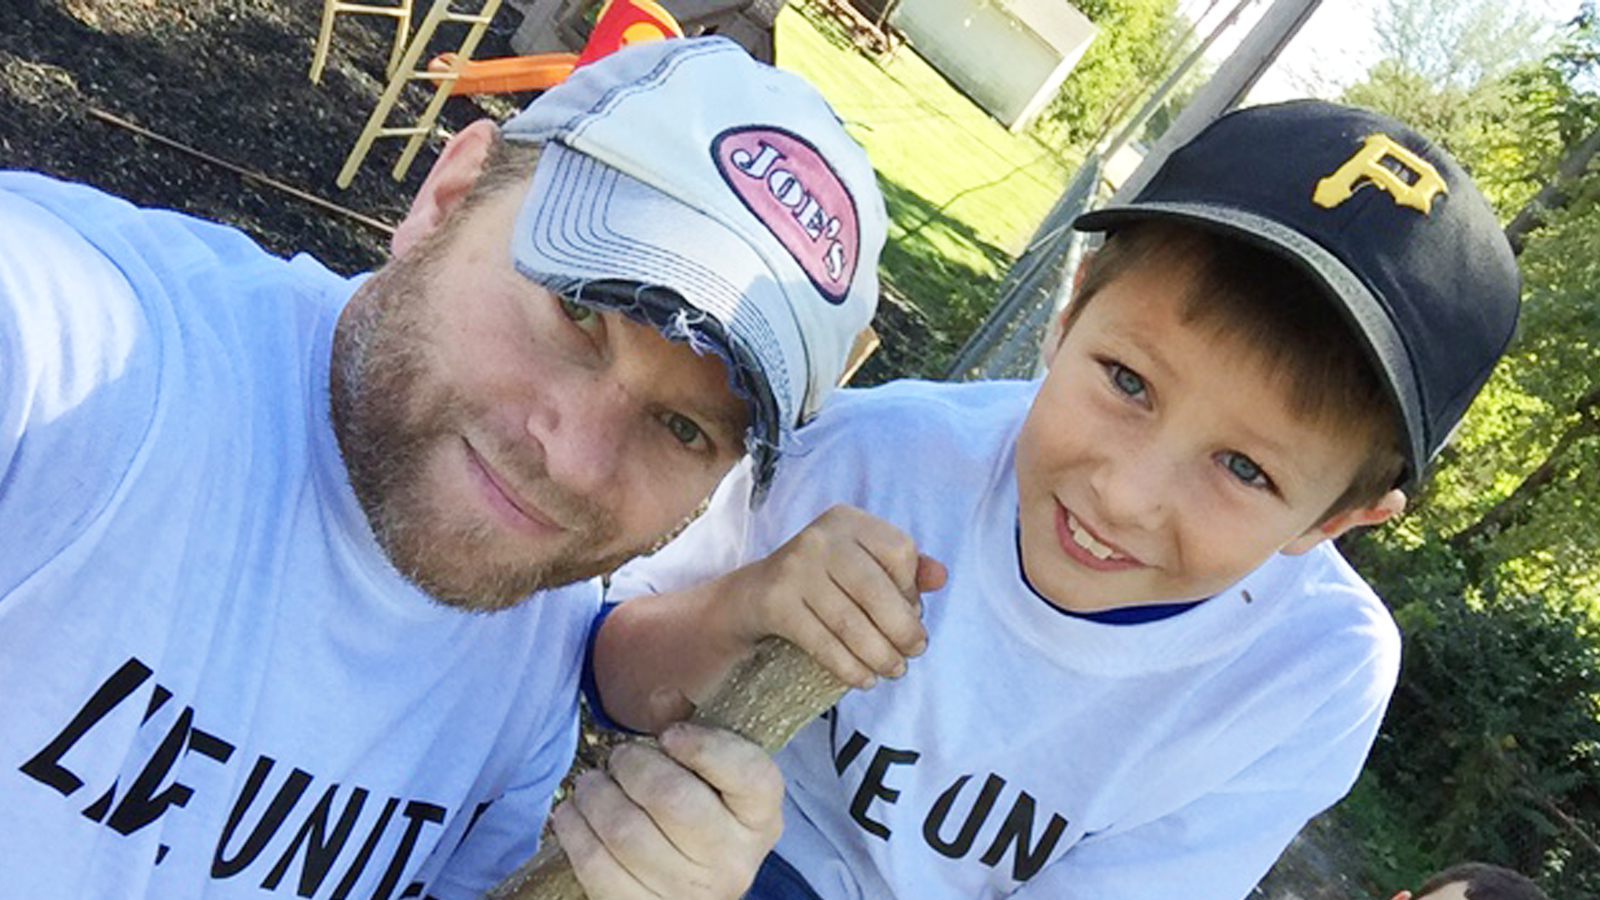 Giving Back - United Way, Springfield, IL Joe Miller and Son